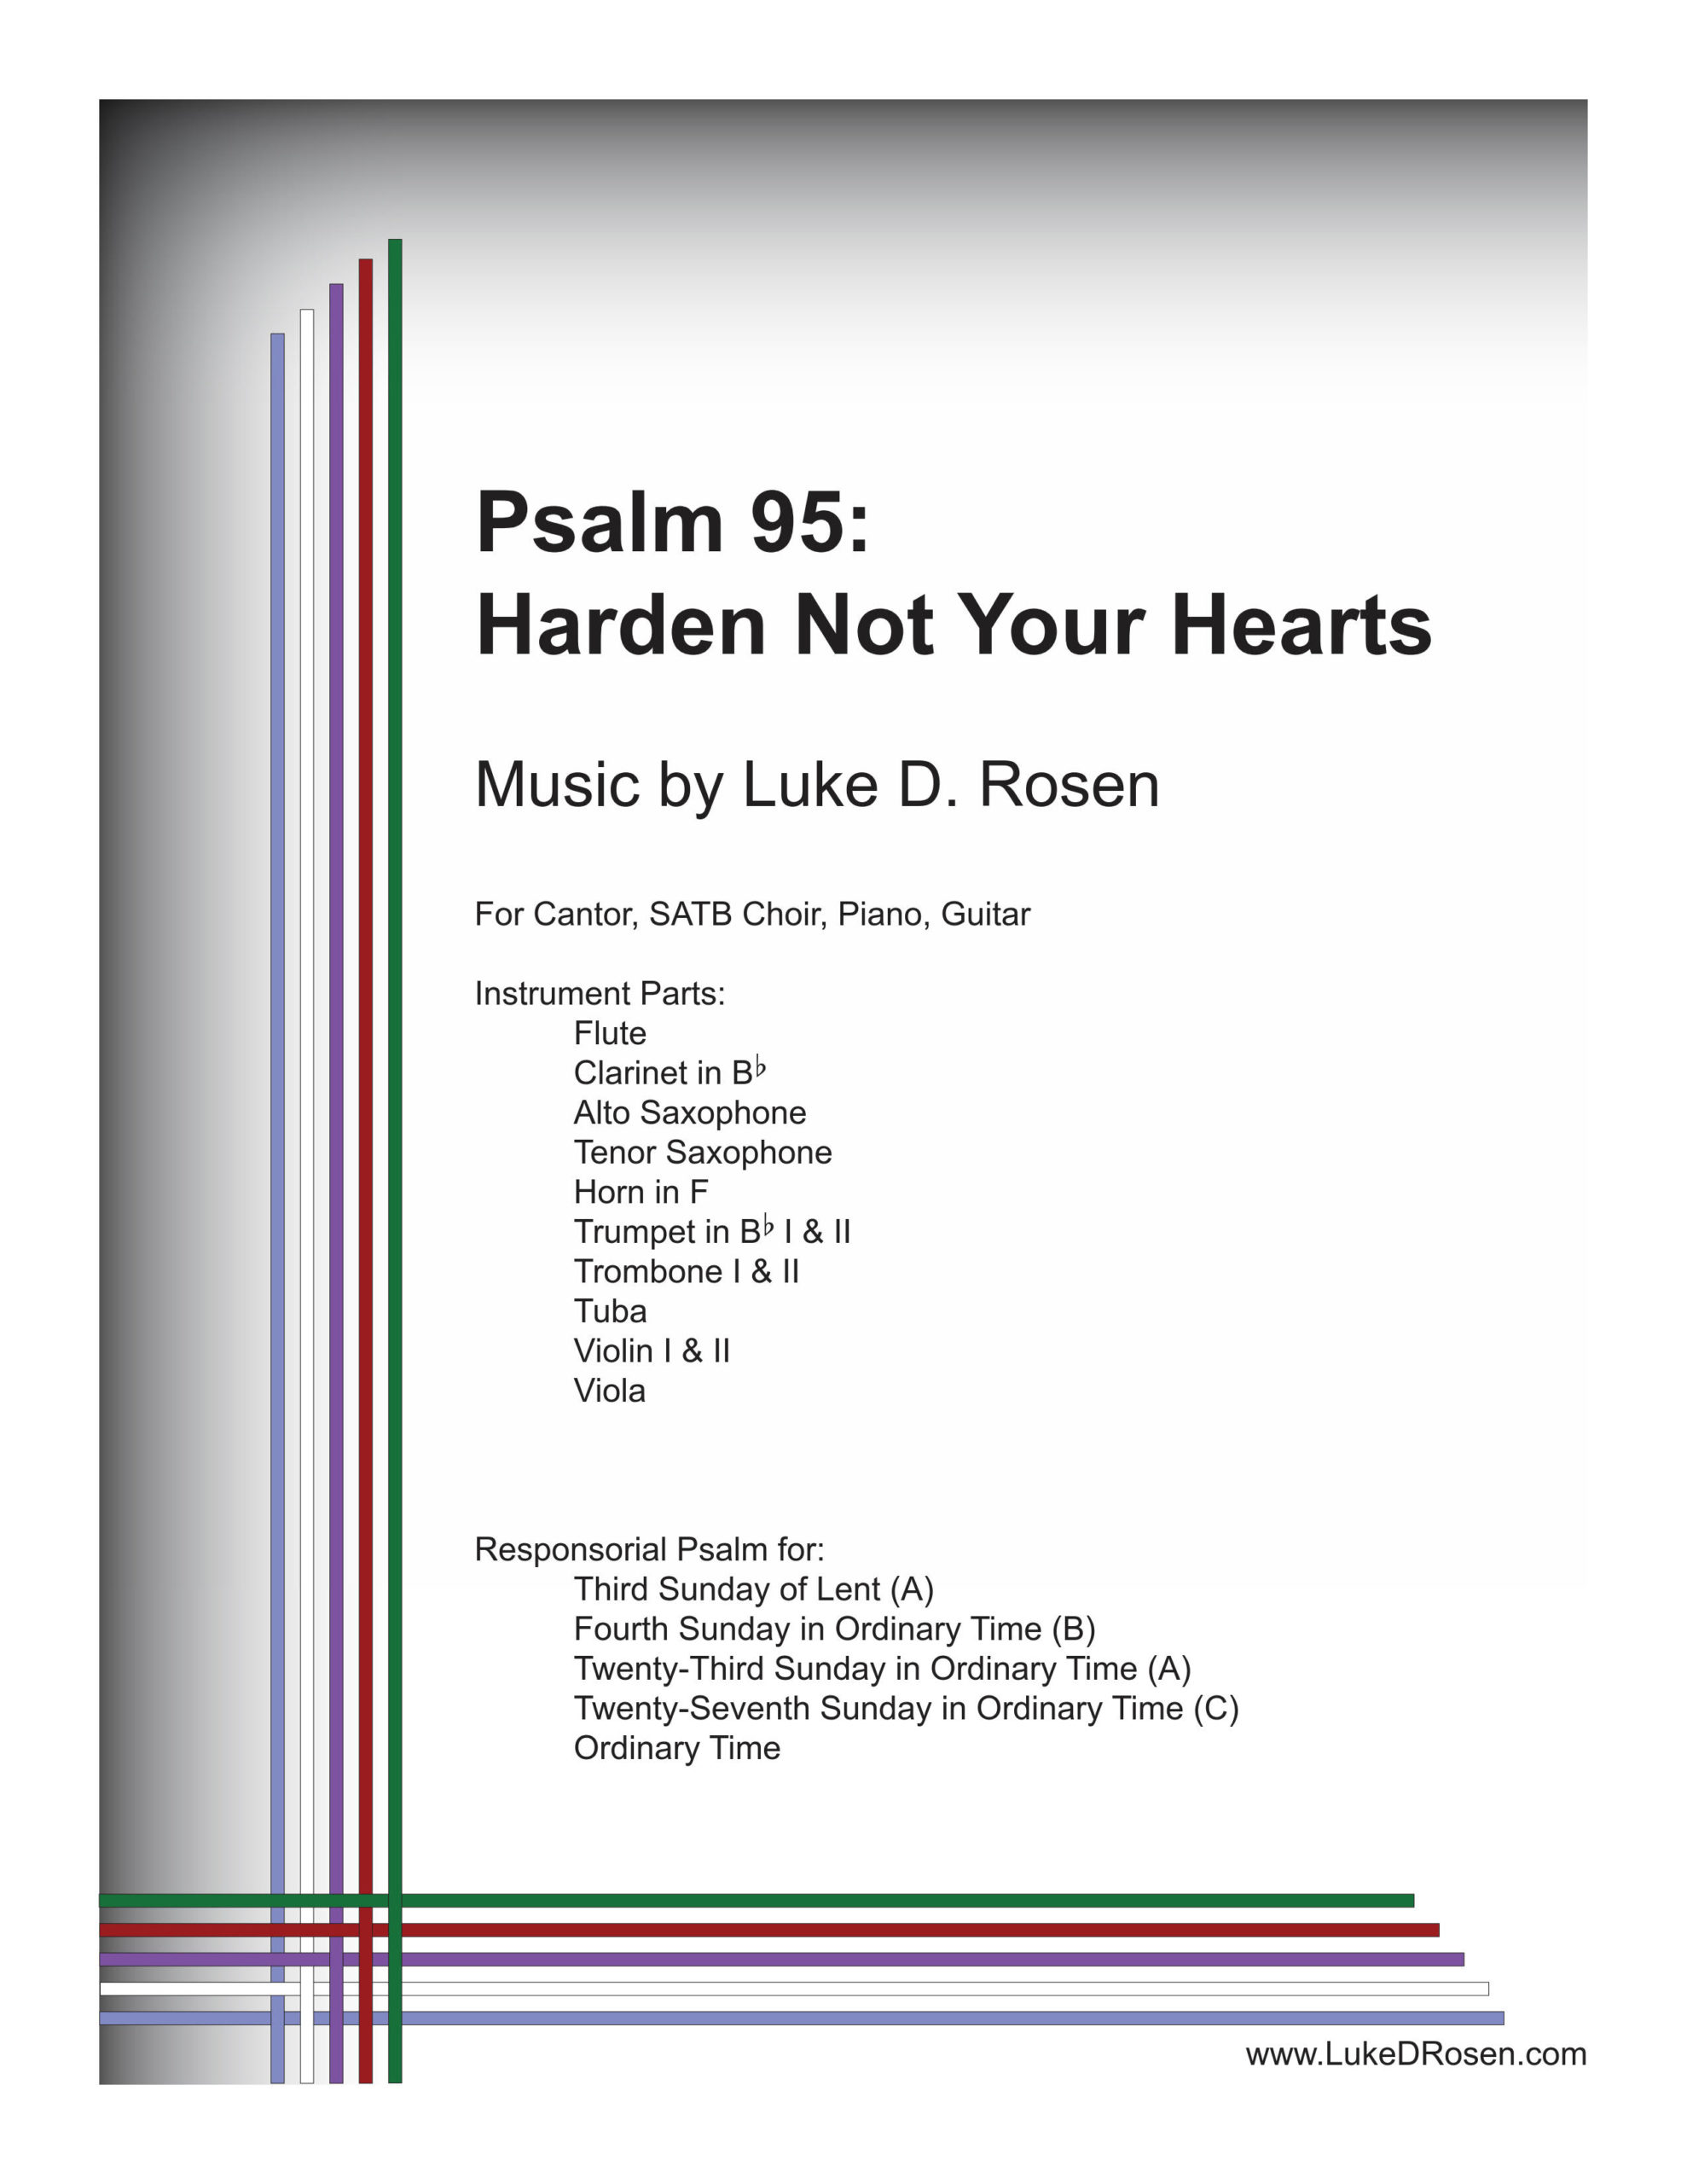 Psalm 95 Harden Not Your Hearts Rosen Sample Complete PDF 1 png